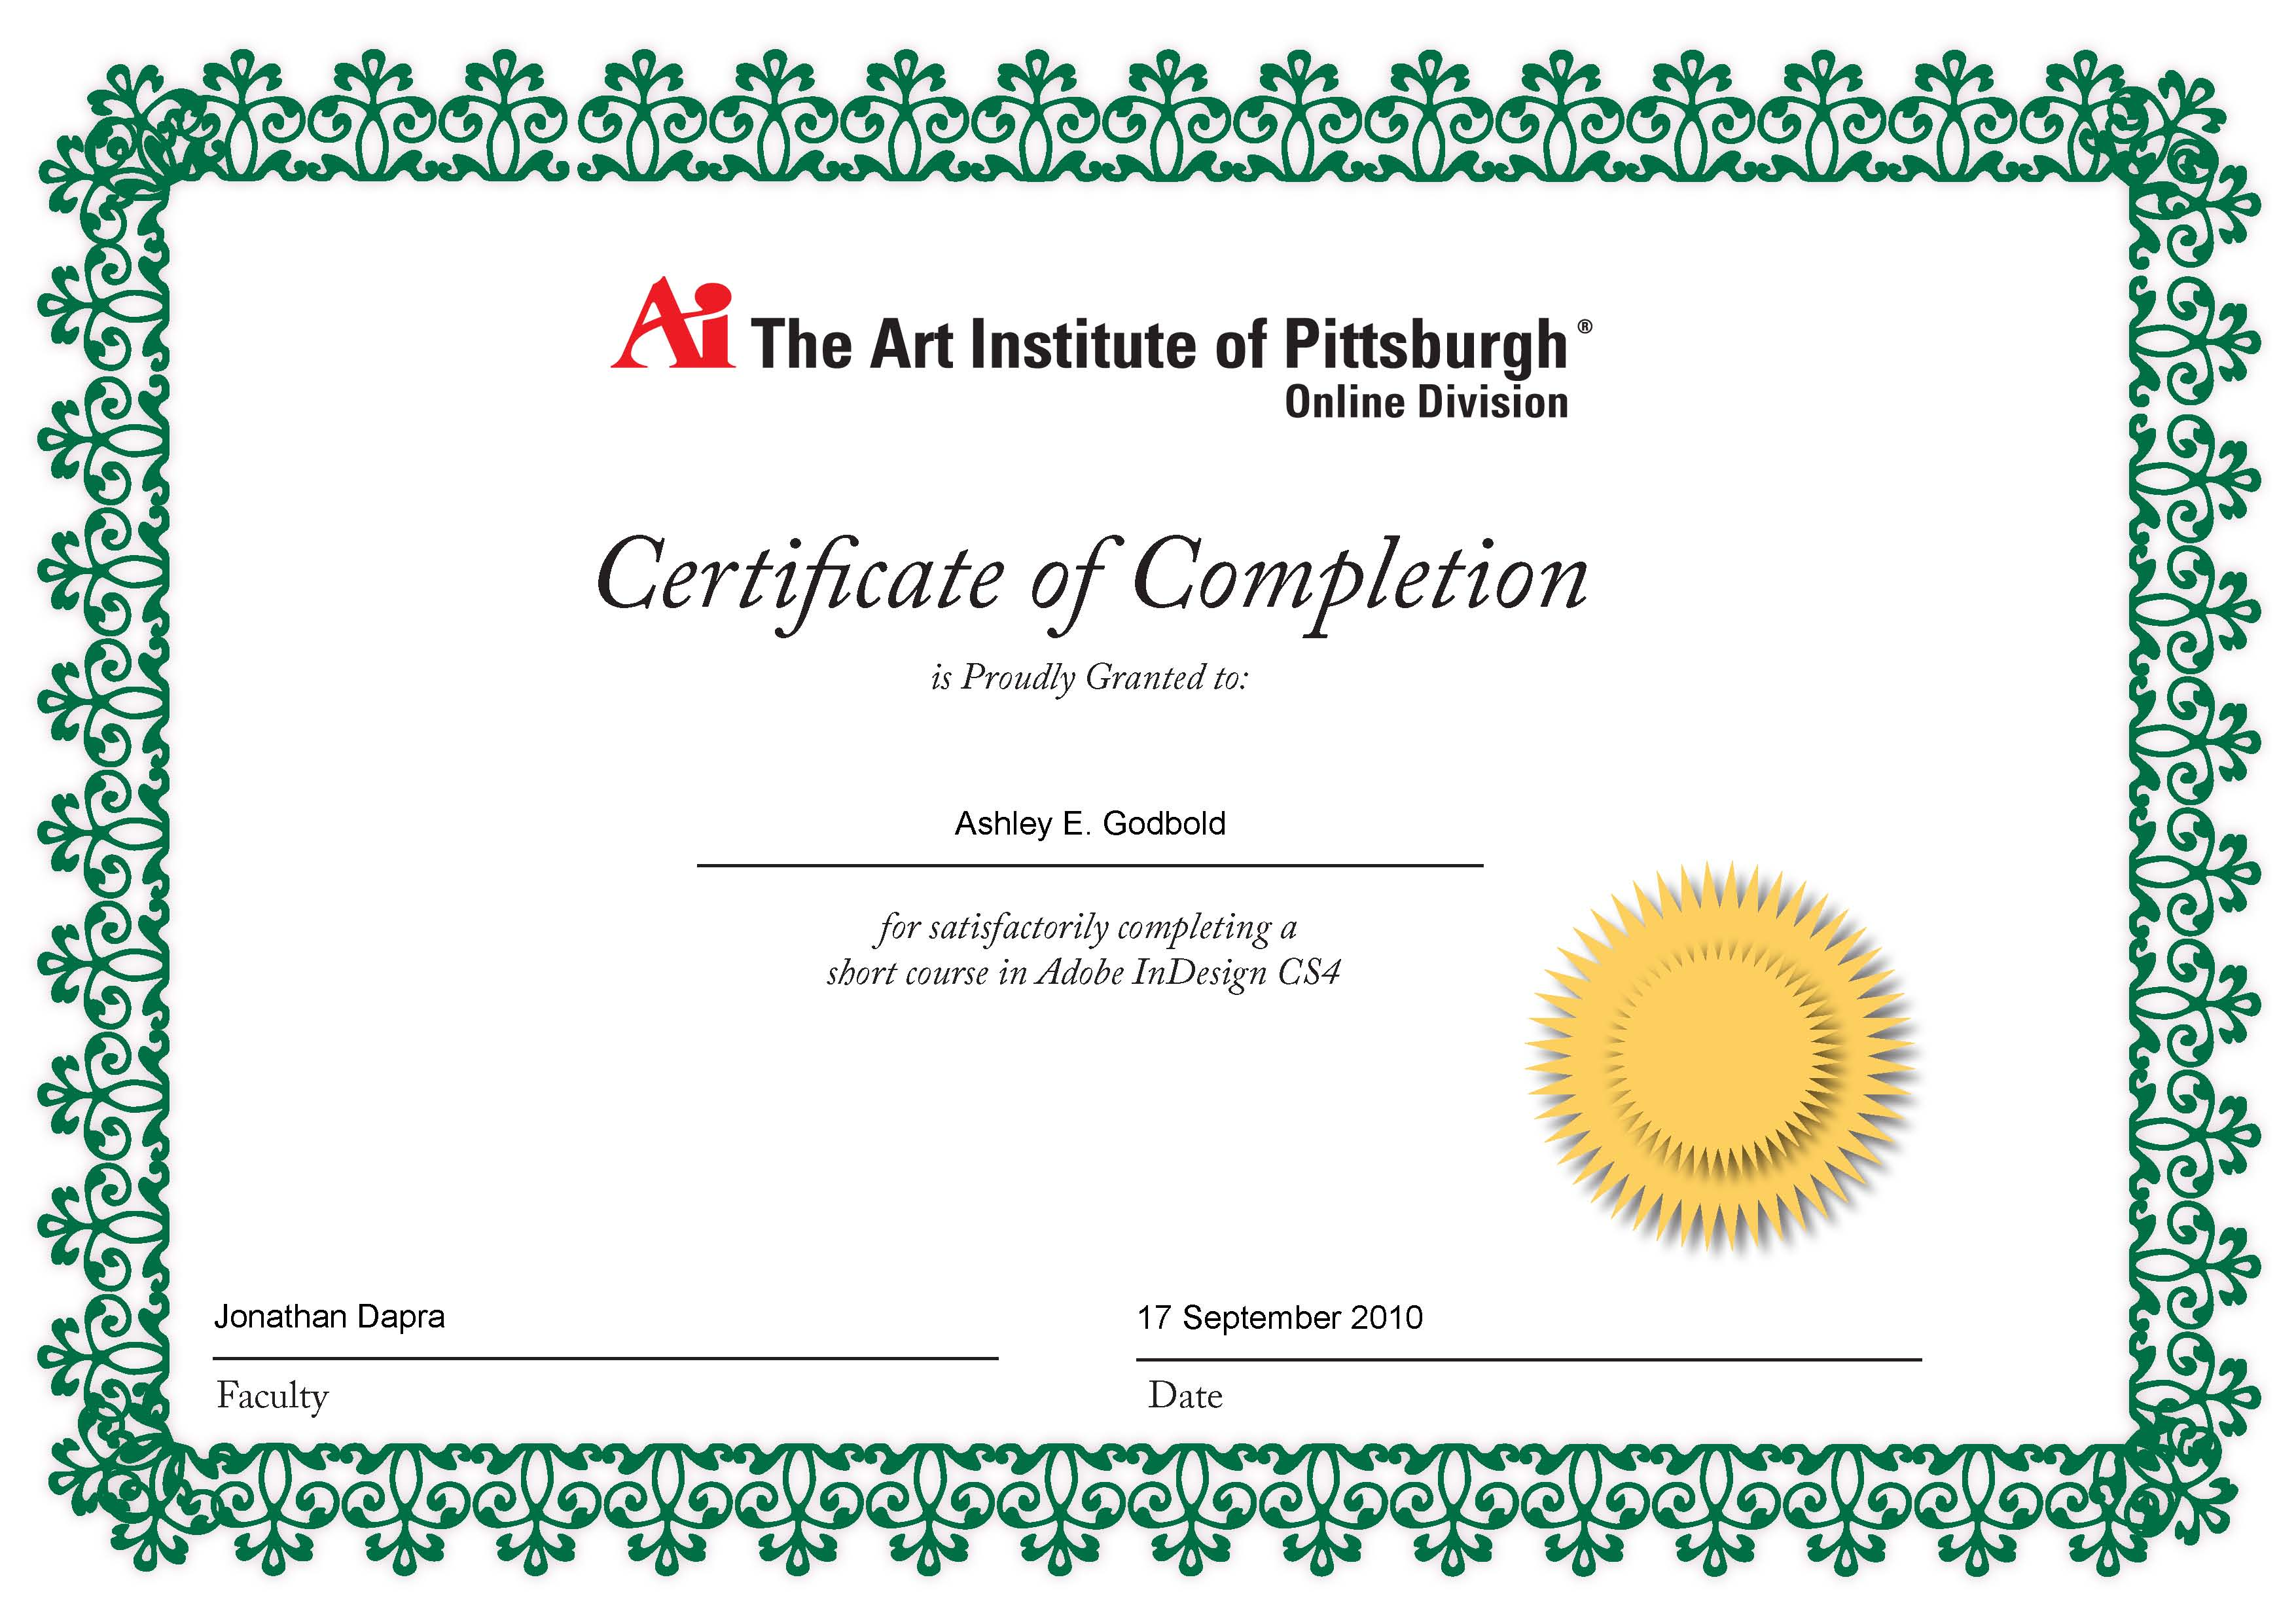 First color theory assignment and certificates of completion adobe indesign cs4 short course certificate of completion xflitez Gallery